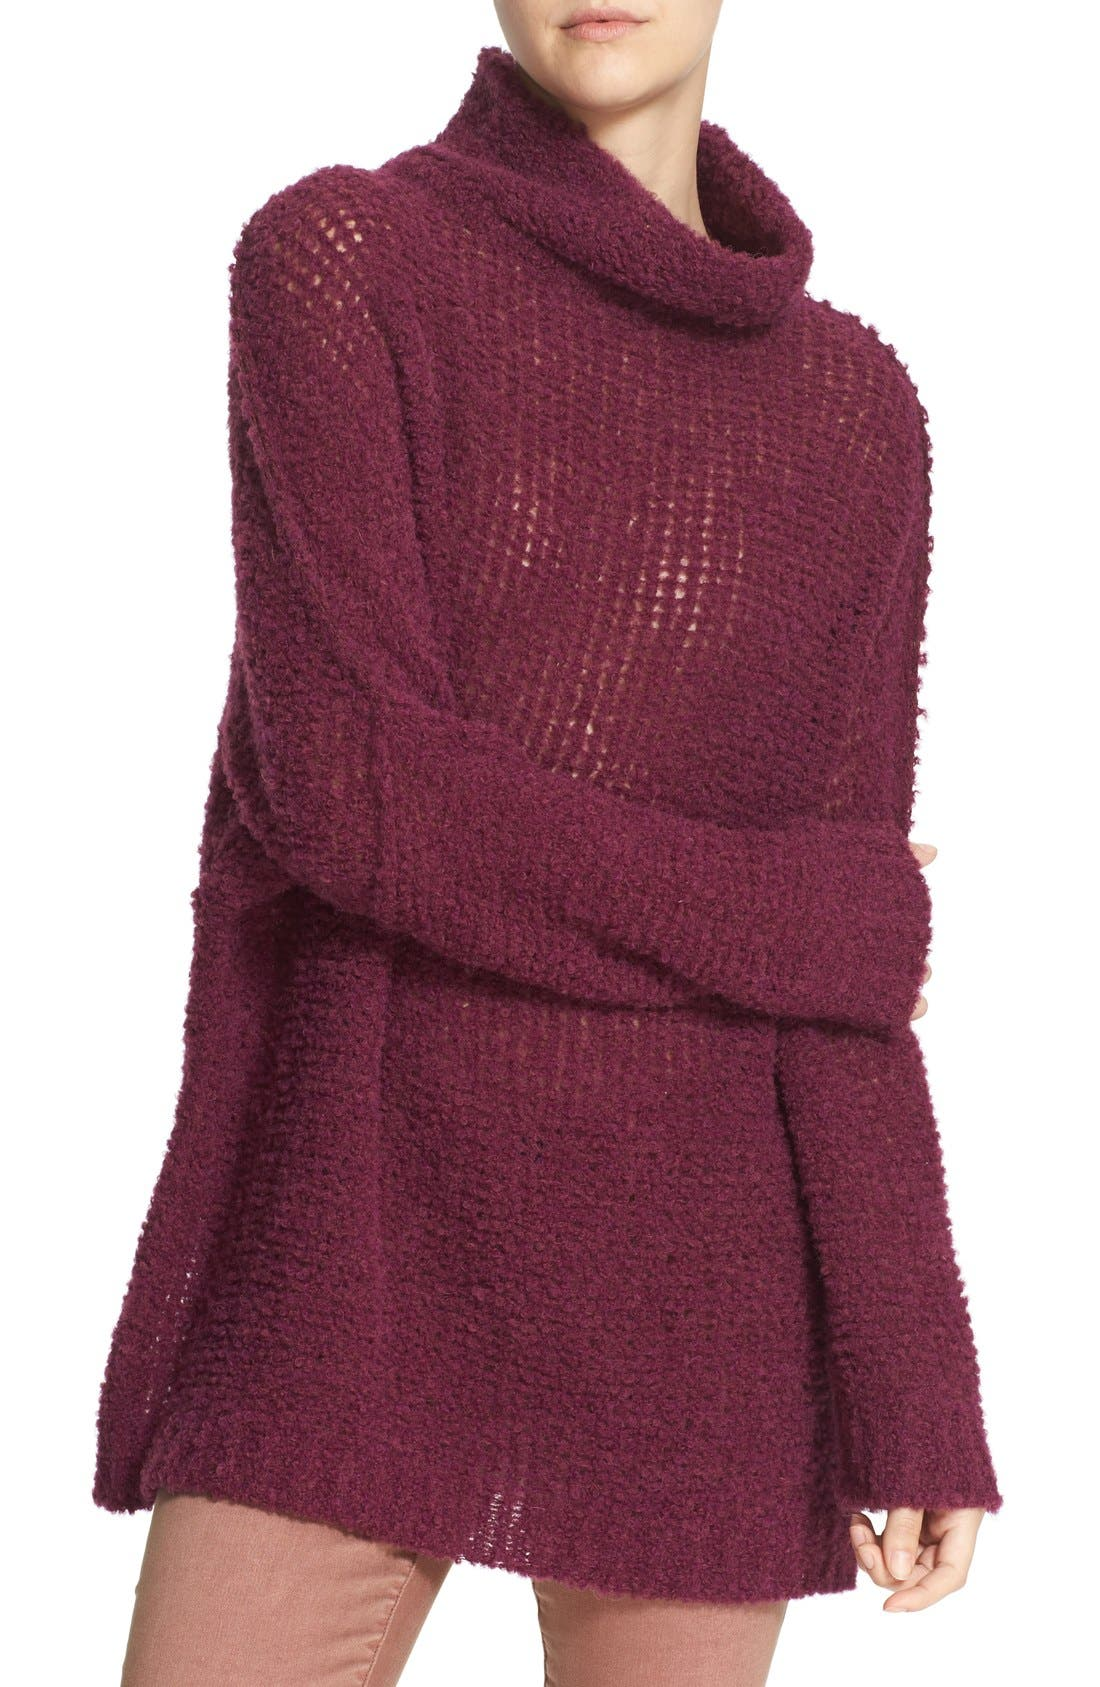 'She's All That' Knit Turtleneck Sweater,                             Alternate thumbnail 29, color,